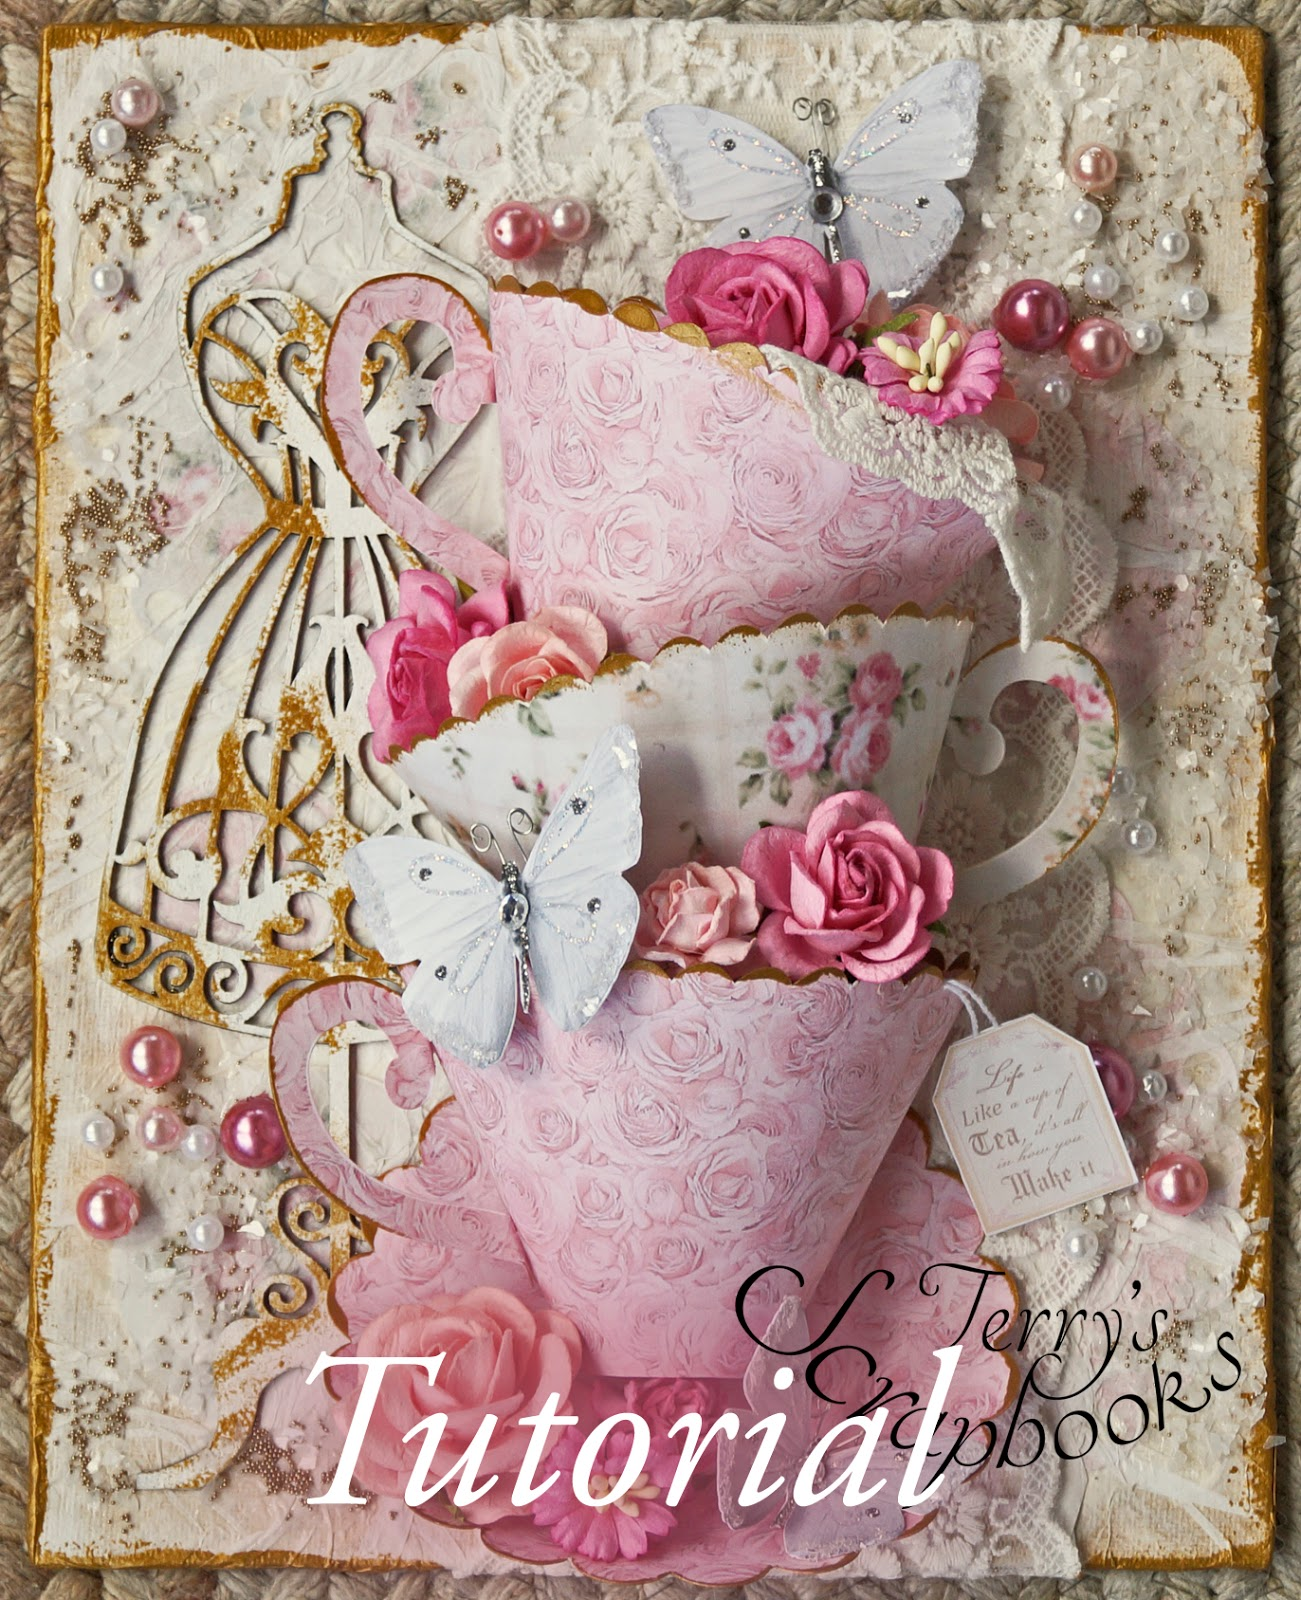 Terrys scrapbooks reneabouquets 3d tea cup canvas design team i put them together in my own way to create this canvas i made a video tutorial as i made it in case you would like to make one too baditri Image collections